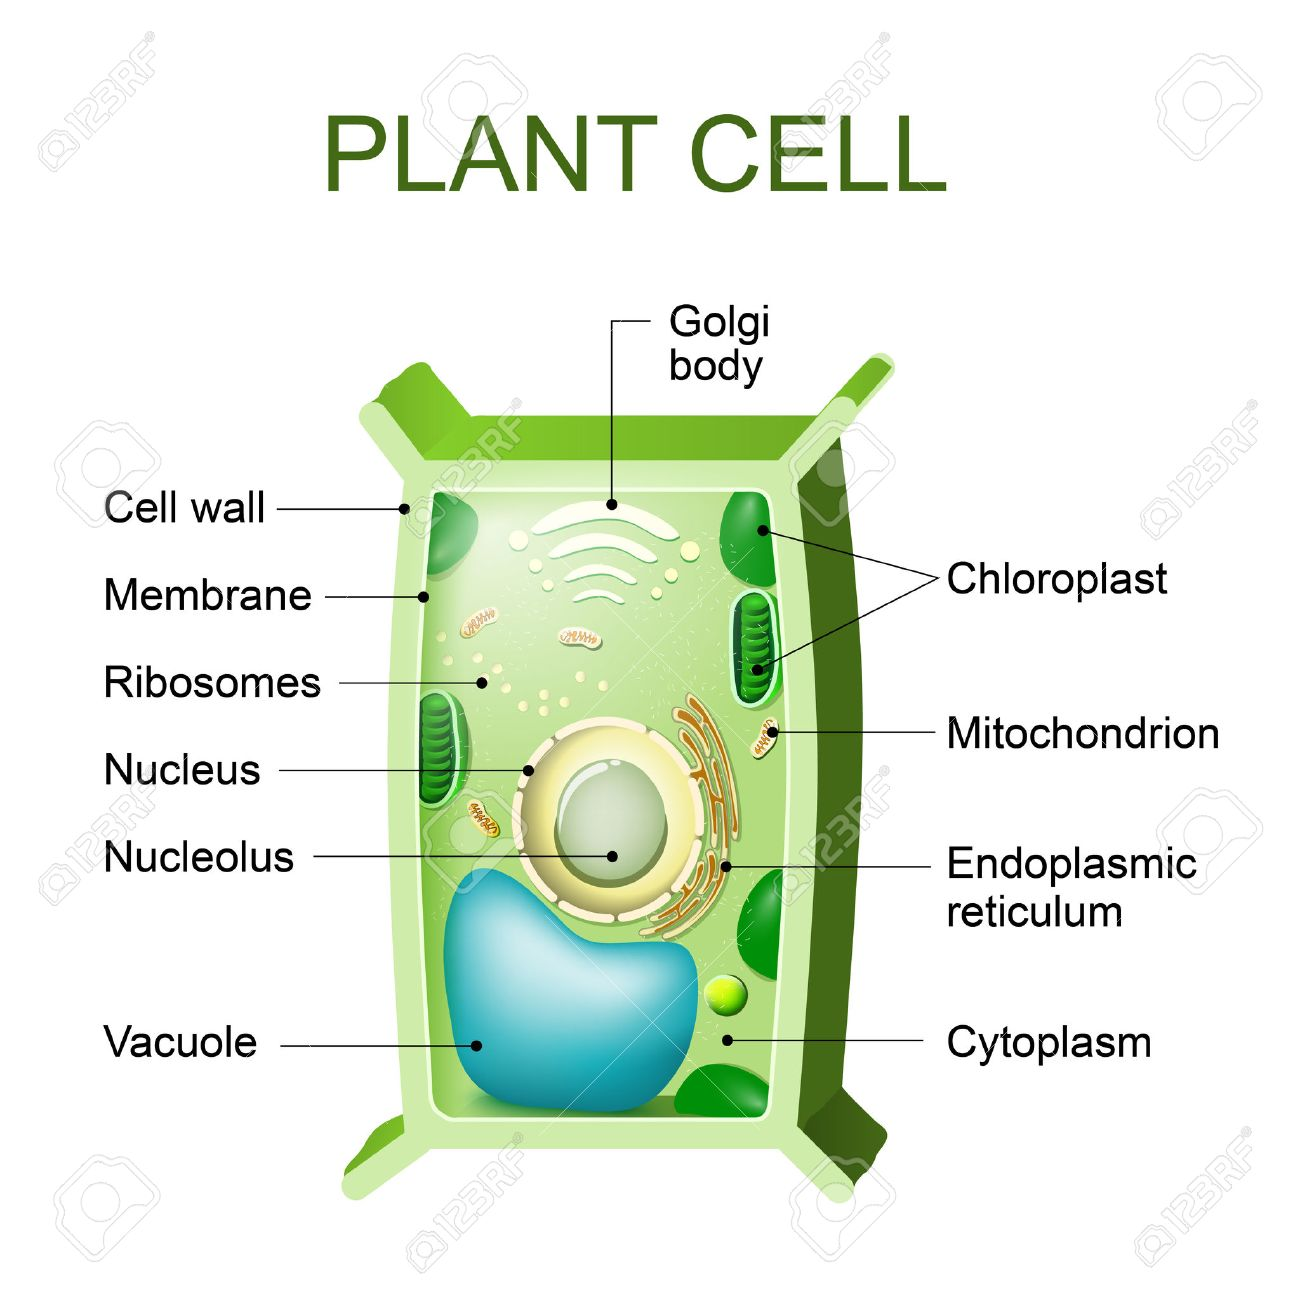 Plant Cell Anatomy Cross Section Of A Plant Cel Royalty Free